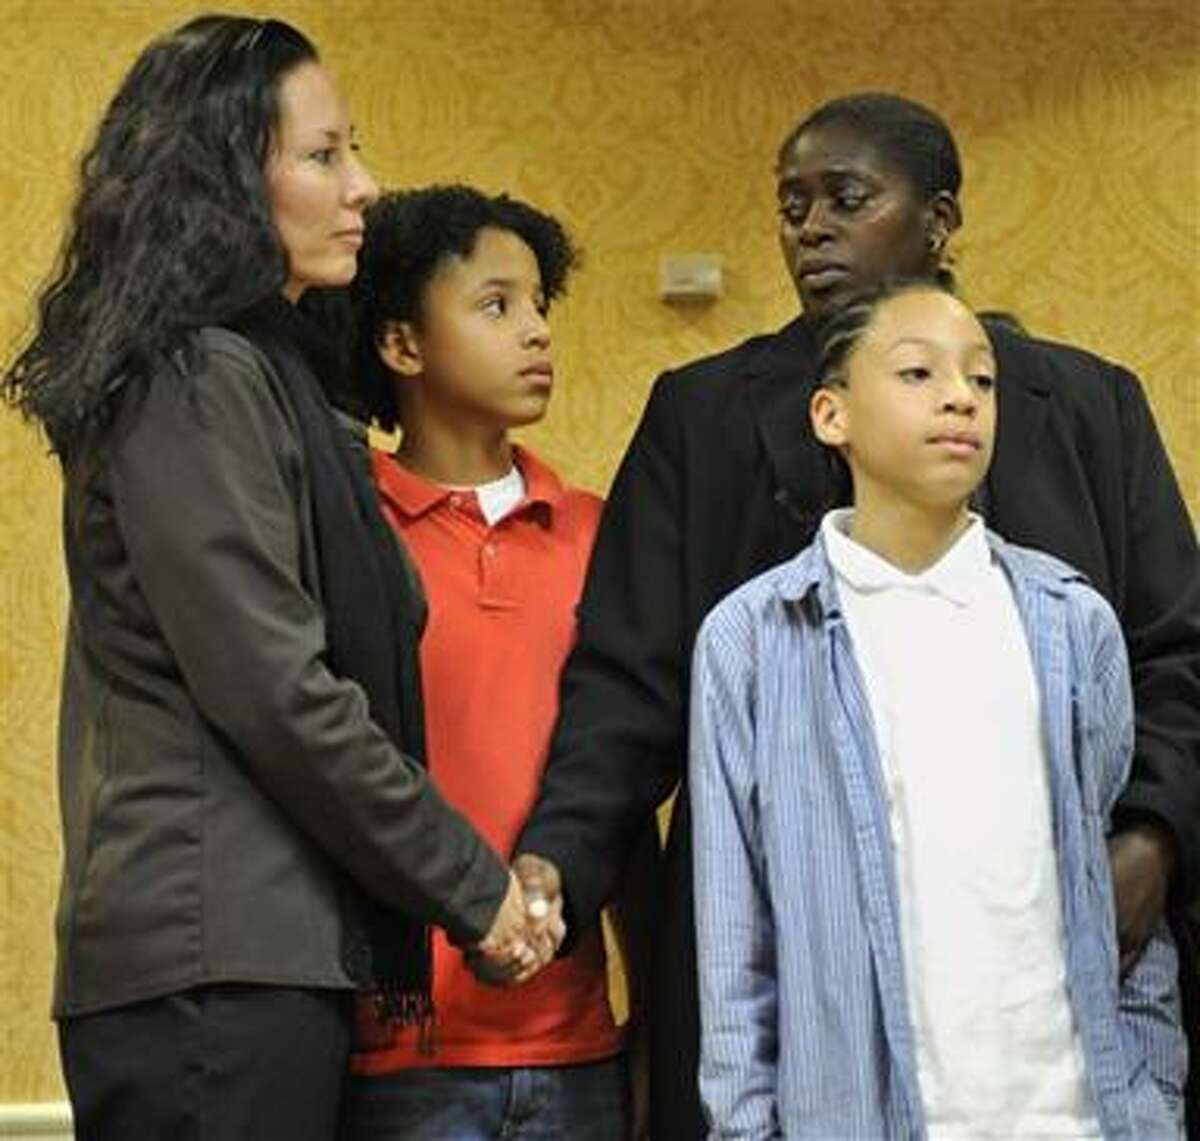 Suzanne Artis, left, and her spouse, Geraldine, second from right, stand with their children Gezani, second from left, and Zanagee, right, during a news conference for the Gay & Lesbian Advocates & Defenders, or GLAD, center, to discuss the filing of a federal lawsuit, in Hartford, Conn., Tuesday, Nov. 9, 2010. Two new lawsuits have been filed on behalf of gay and lesbian couples in four states to challenge a 1996 law denying married gay couples federal benefits. The lawsuits were filed Tuesday in federal courts in Connecticut and New York. They were filed on behalf of couples in Connecticut, Vermont, New Hampshire and New York. (AP Photo/Jessica Hill)